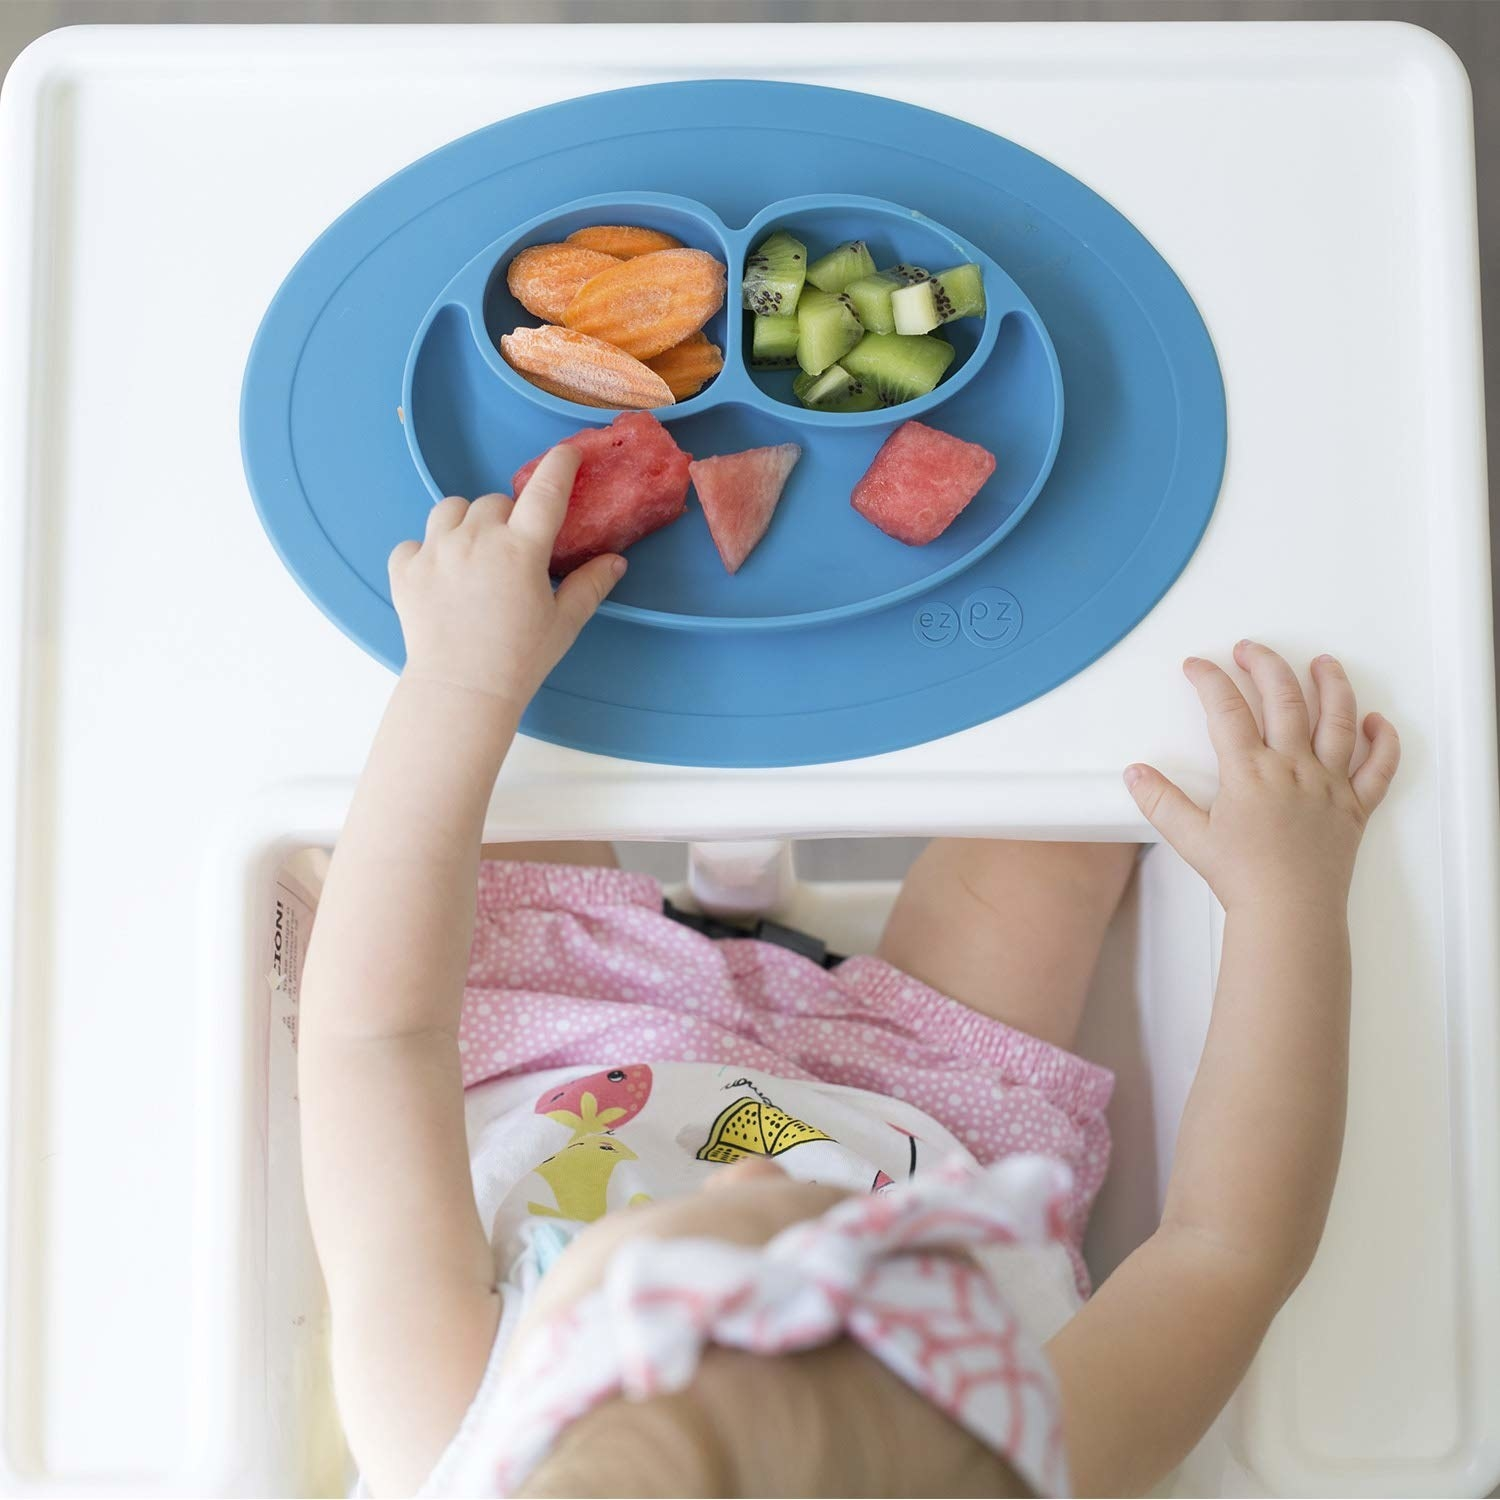 A baby sitting in a high chair with the blue, oval-shaped mat stuck to it. It's got three compartments that form a happy-face like shape in the center